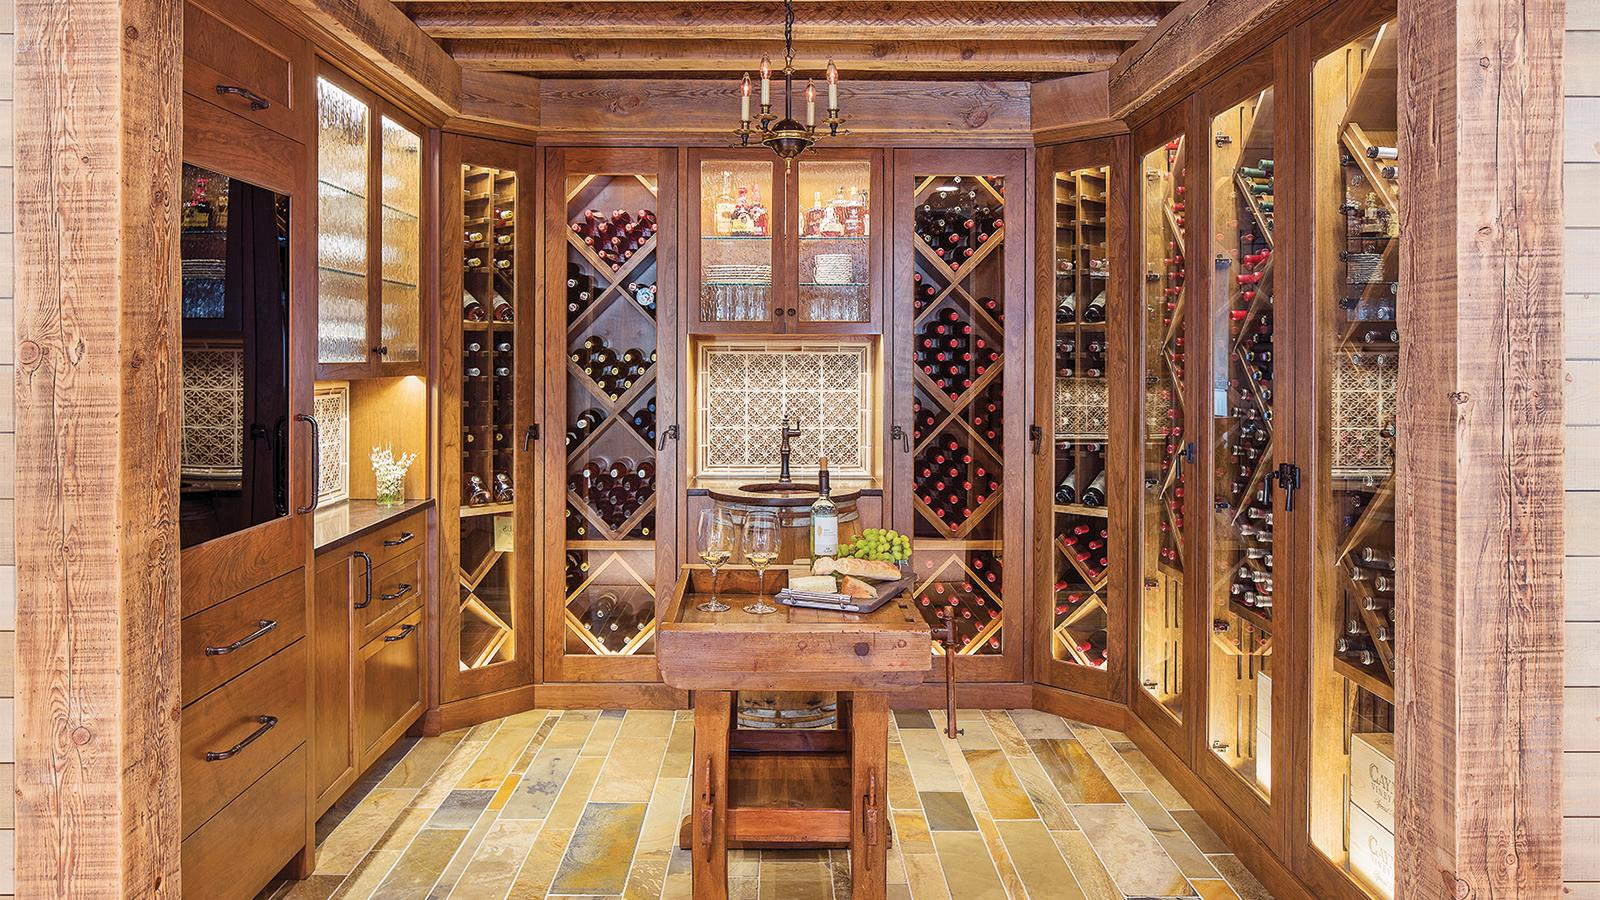 In This Cellar, Refined Design Meets Grab 'n' Go Wine